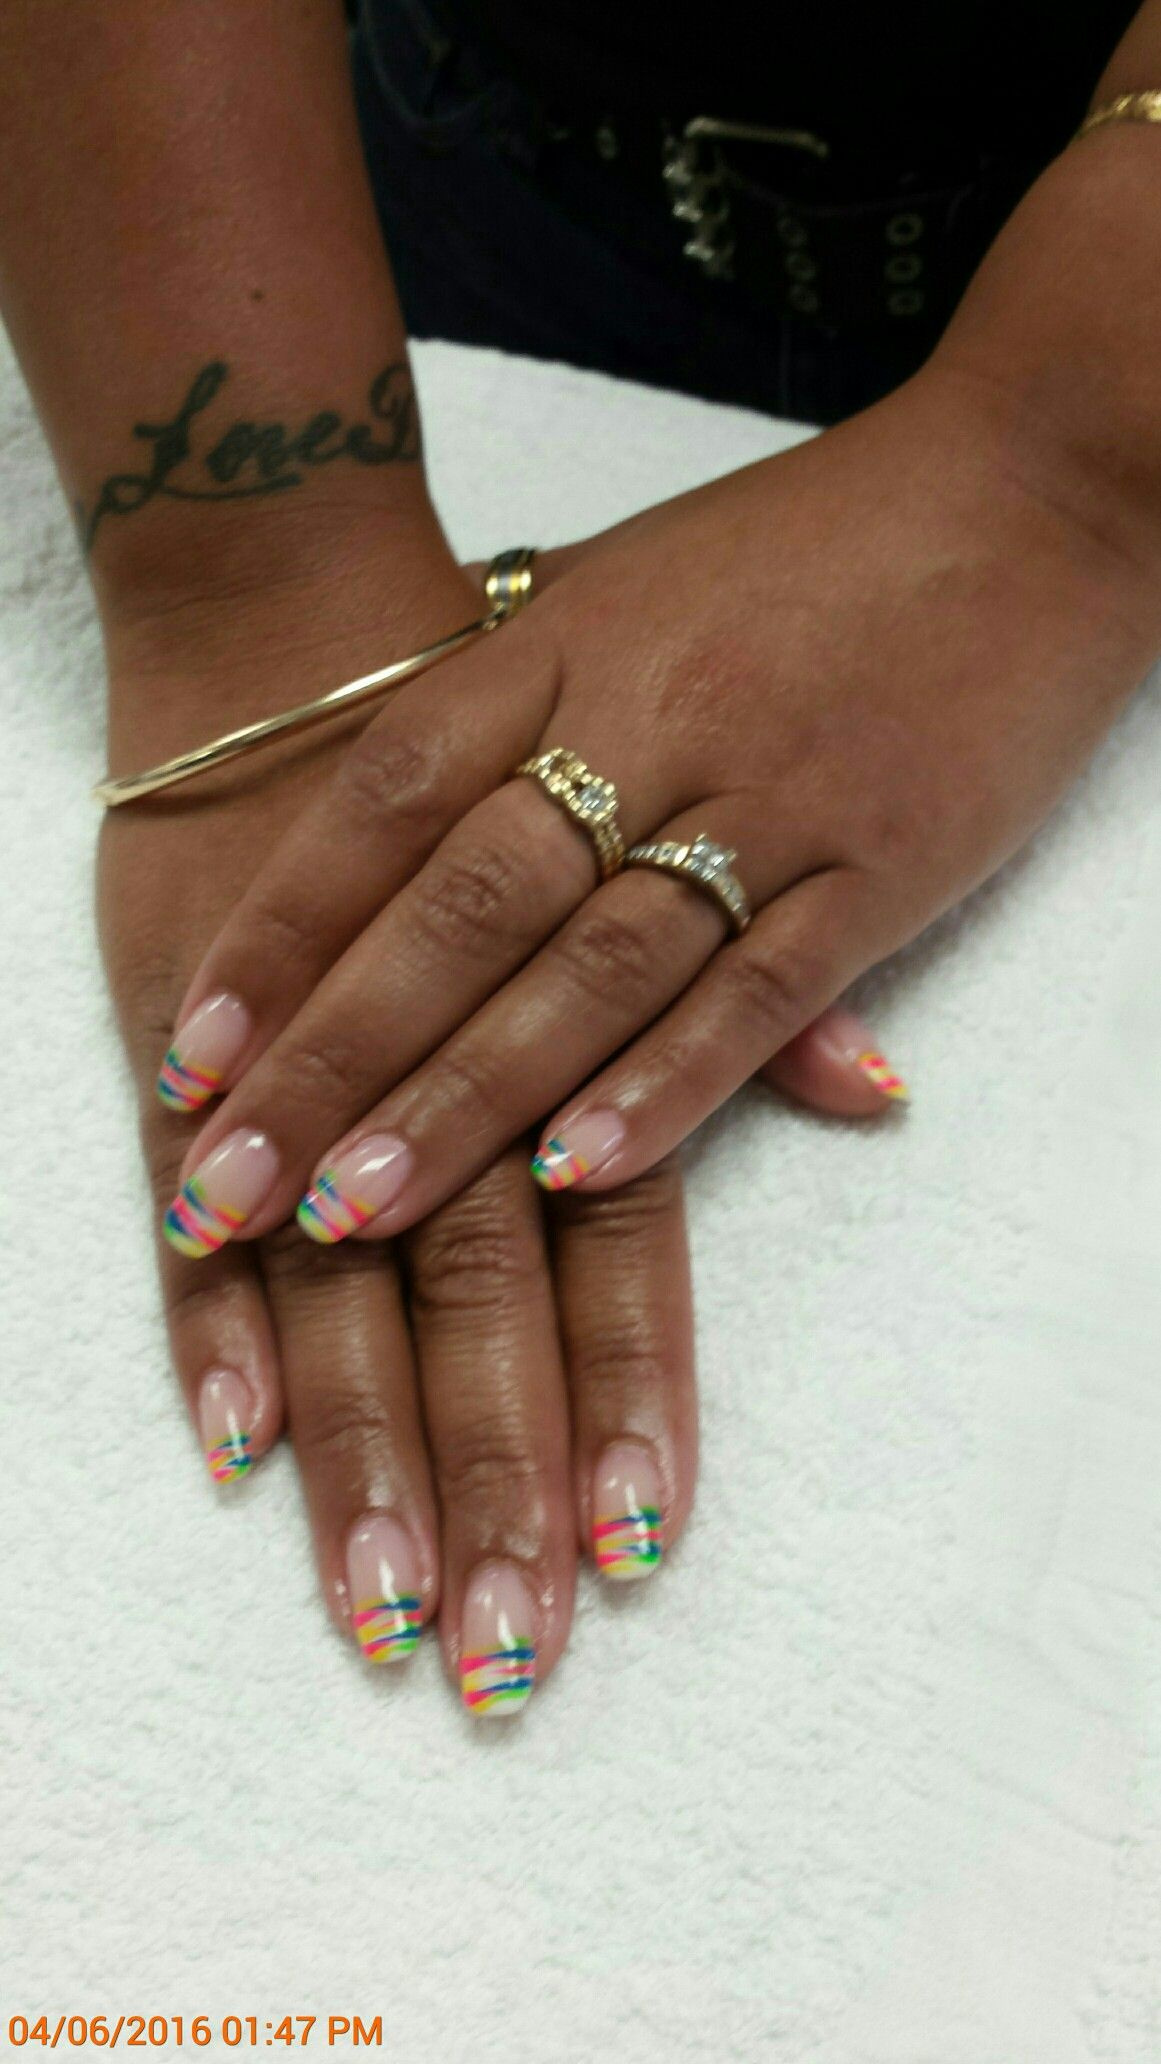 Star Nails on Parliament by Hong